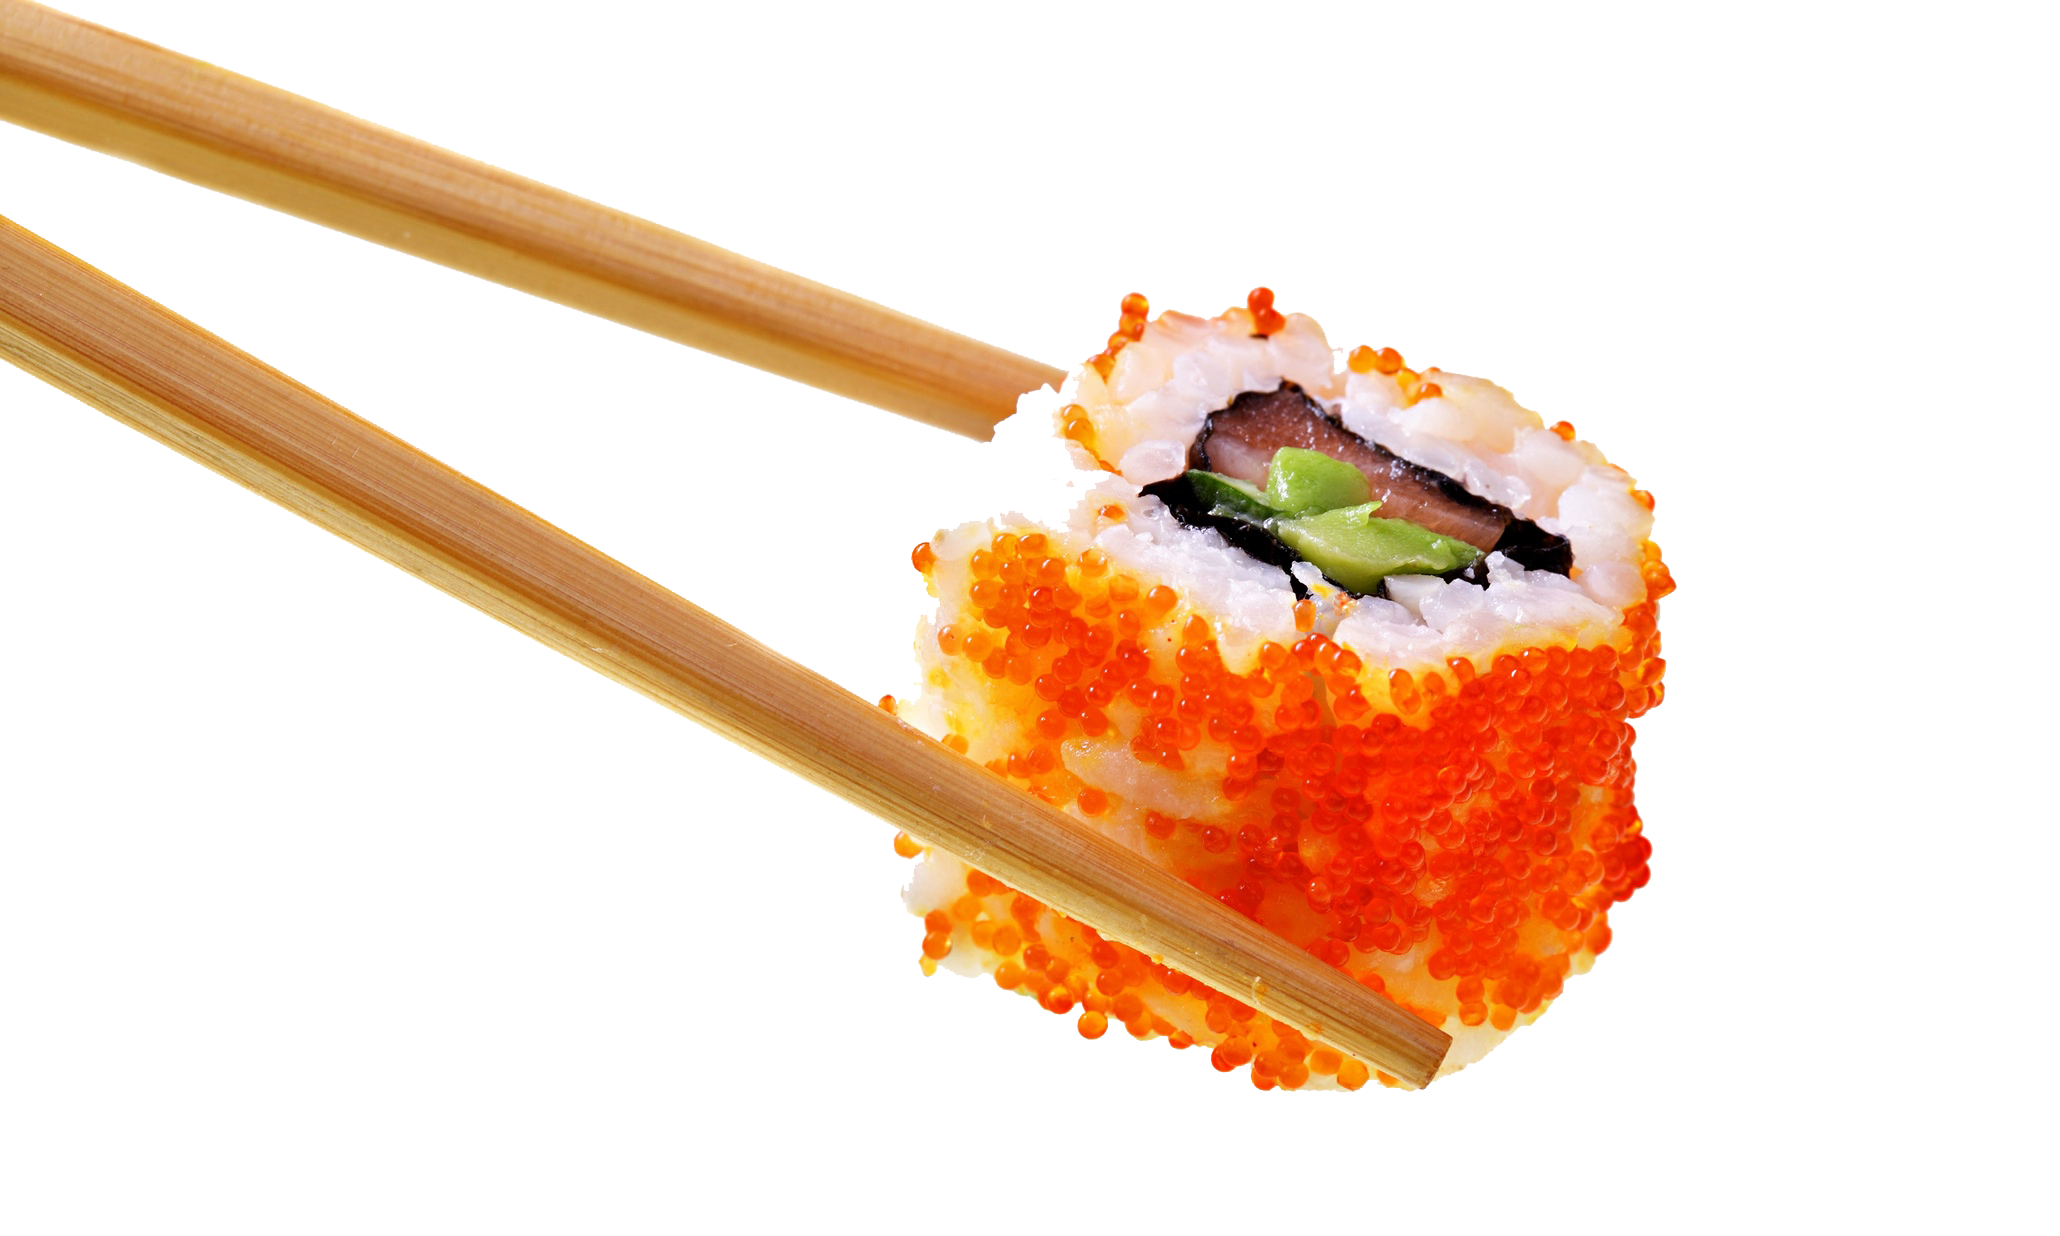 Gallery of Sushi Roll Png - Sushi Roll PNG - Sushi HD PNG